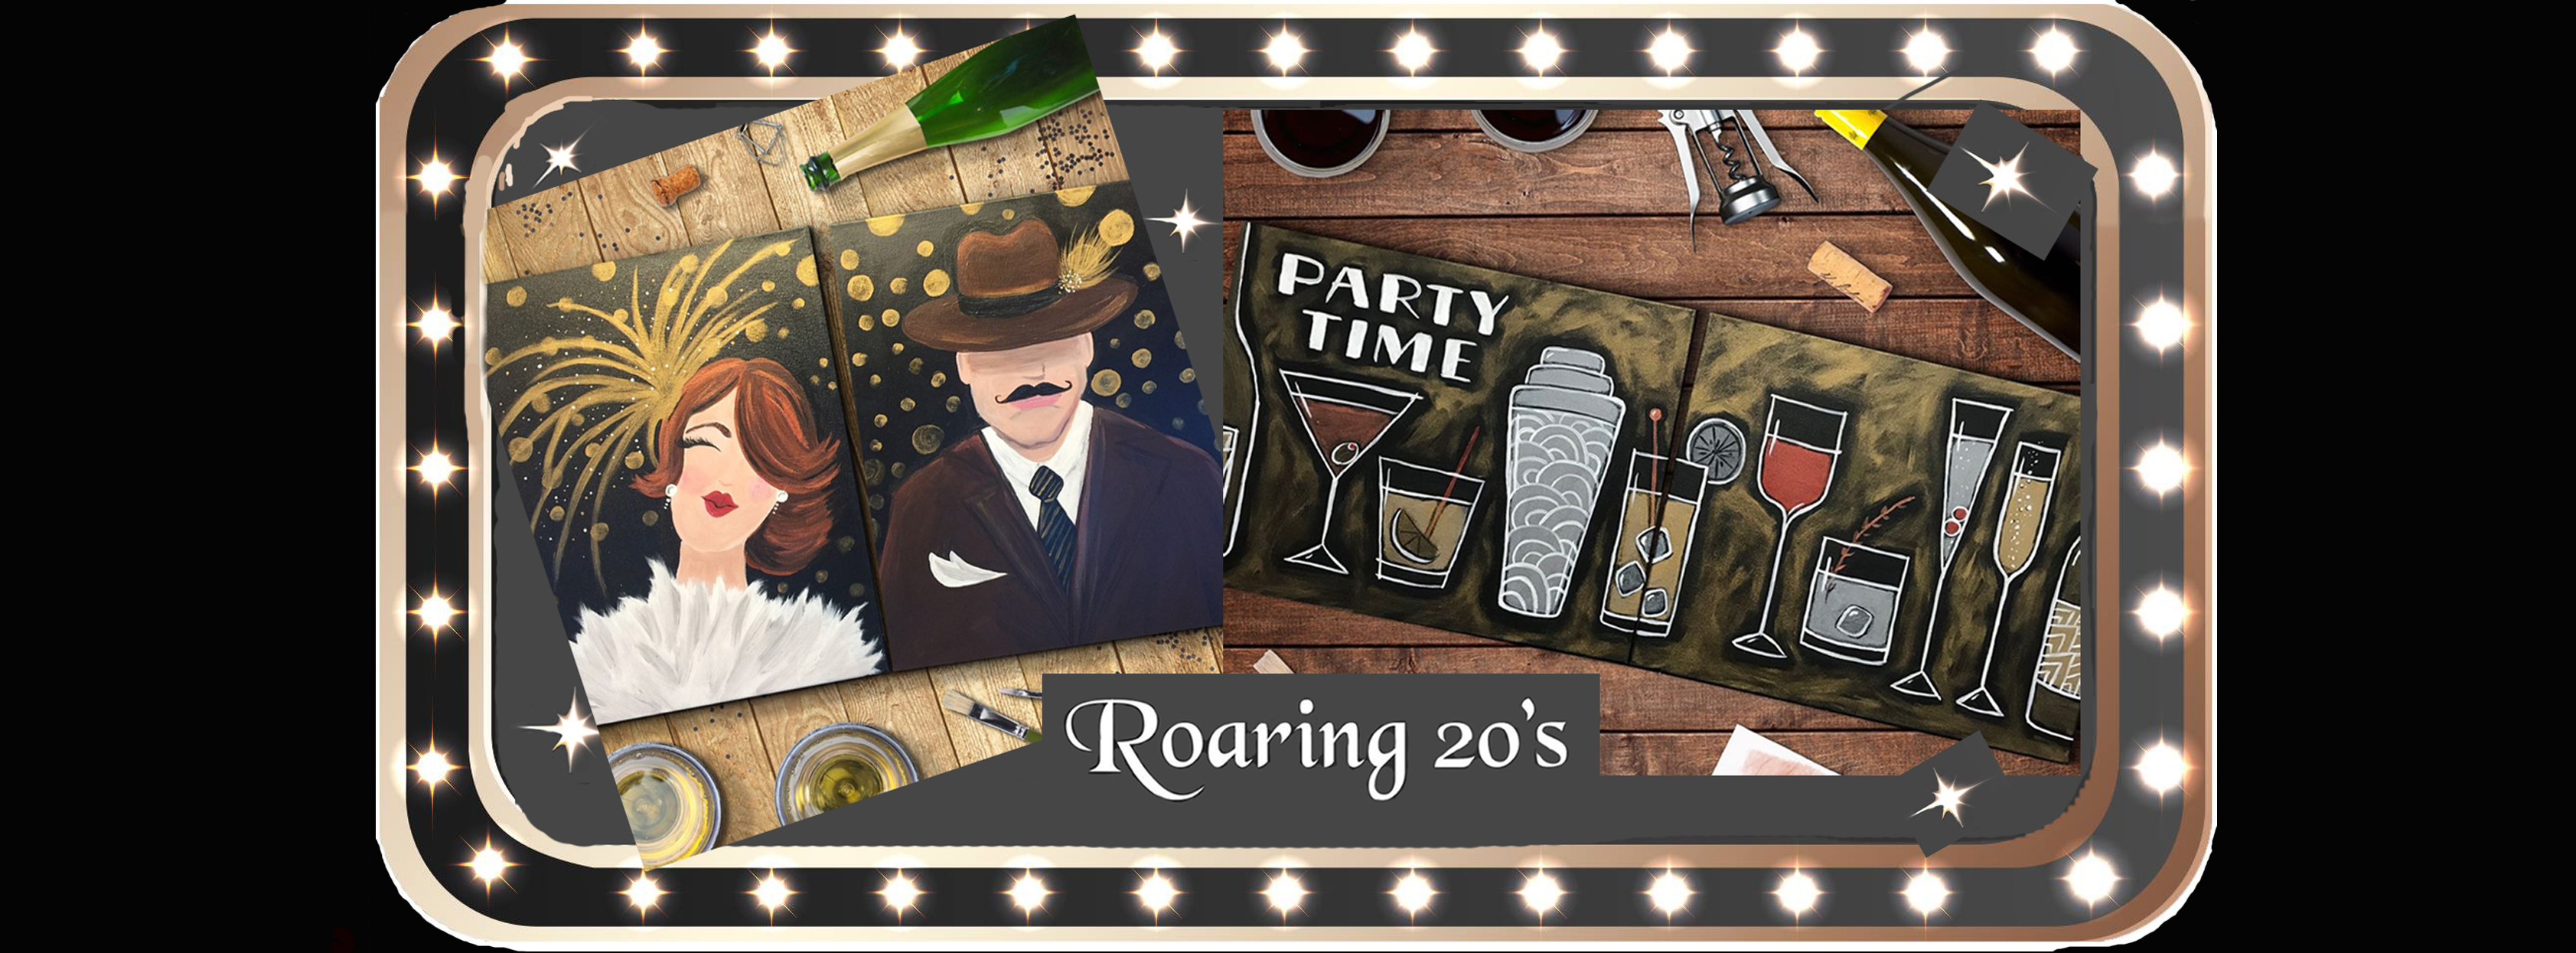 Join Us For Our Fabulous 'Roaring' 20's Party To Celebrate The New Year!